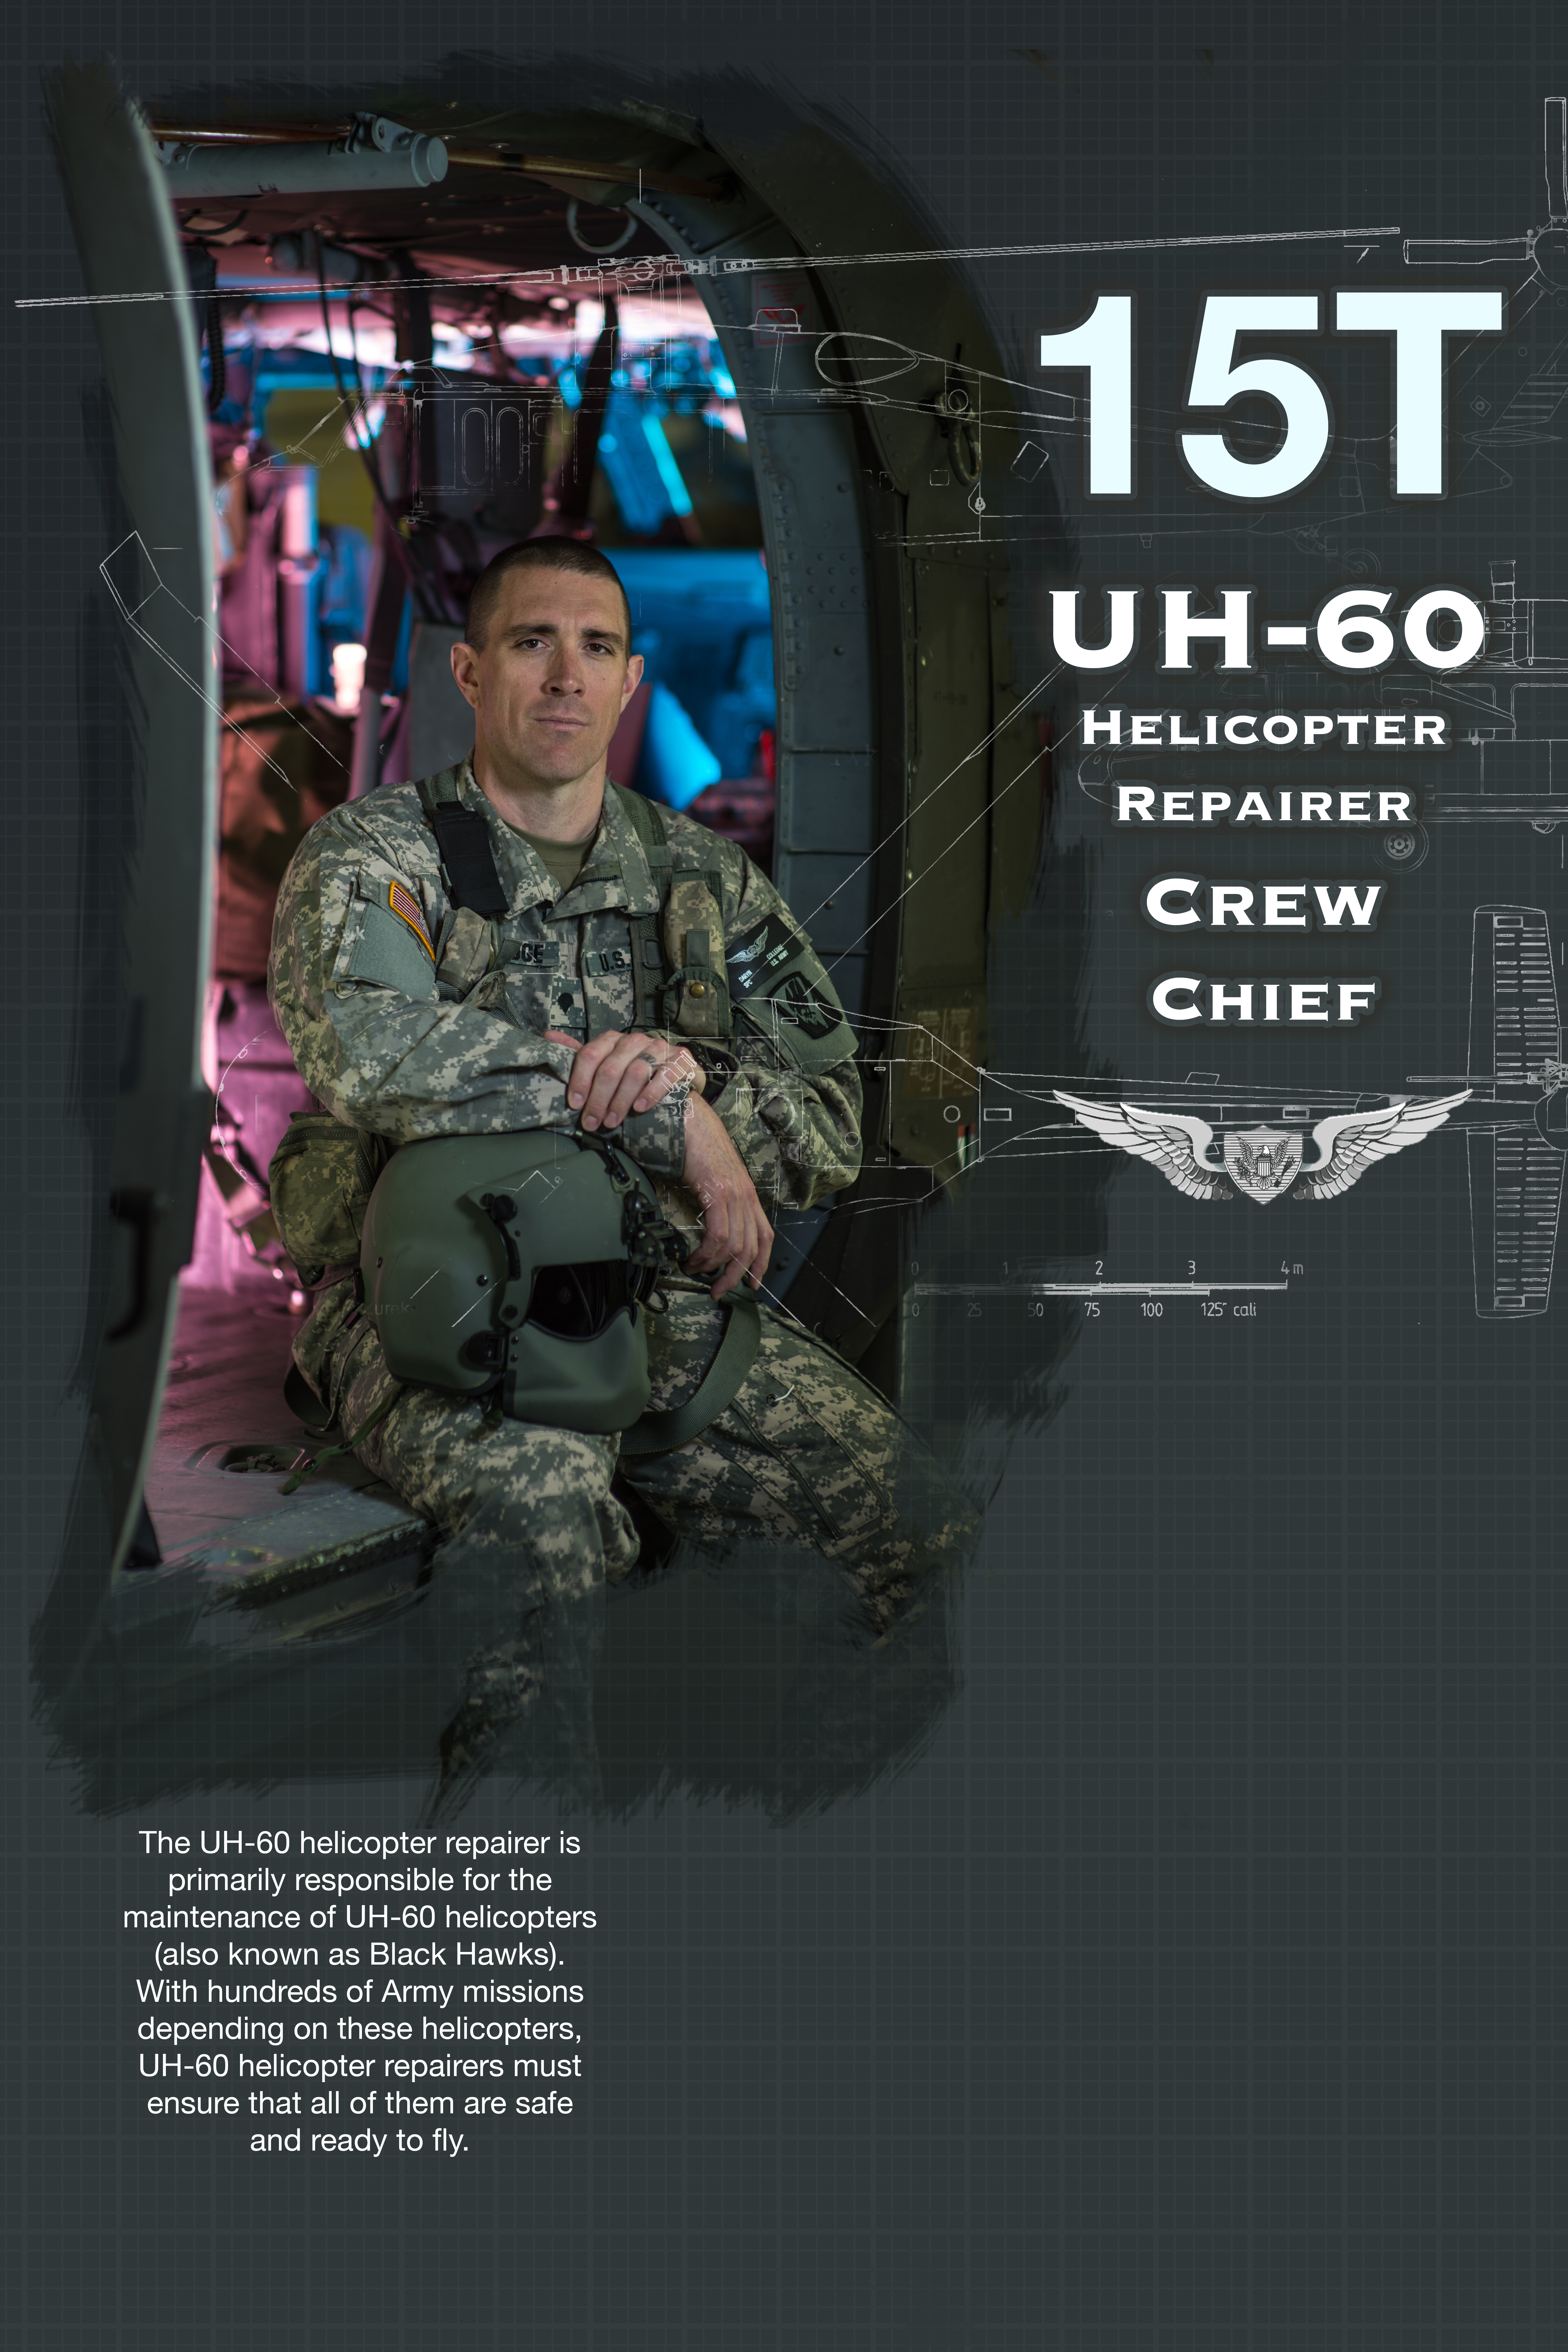 15T Helicopter Repairer Crew Chief